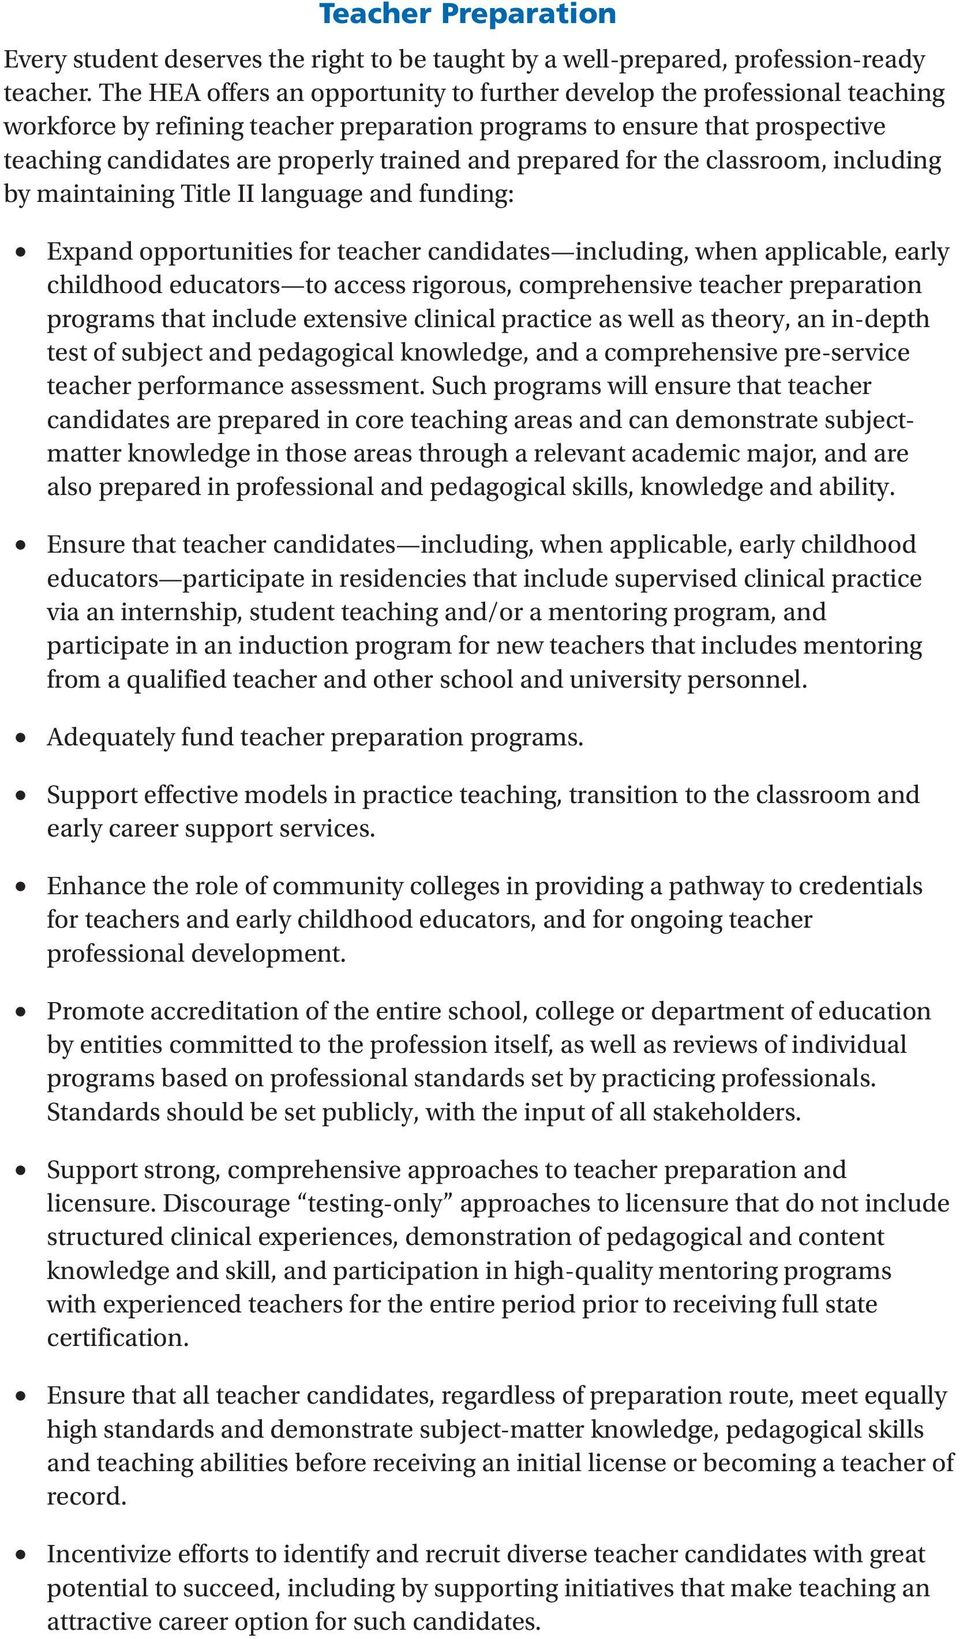 prepared for the classroom, including by maintaining Title II language and funding: Expand opportunities for teacher candidates including, when applicable, early childhood educators to access